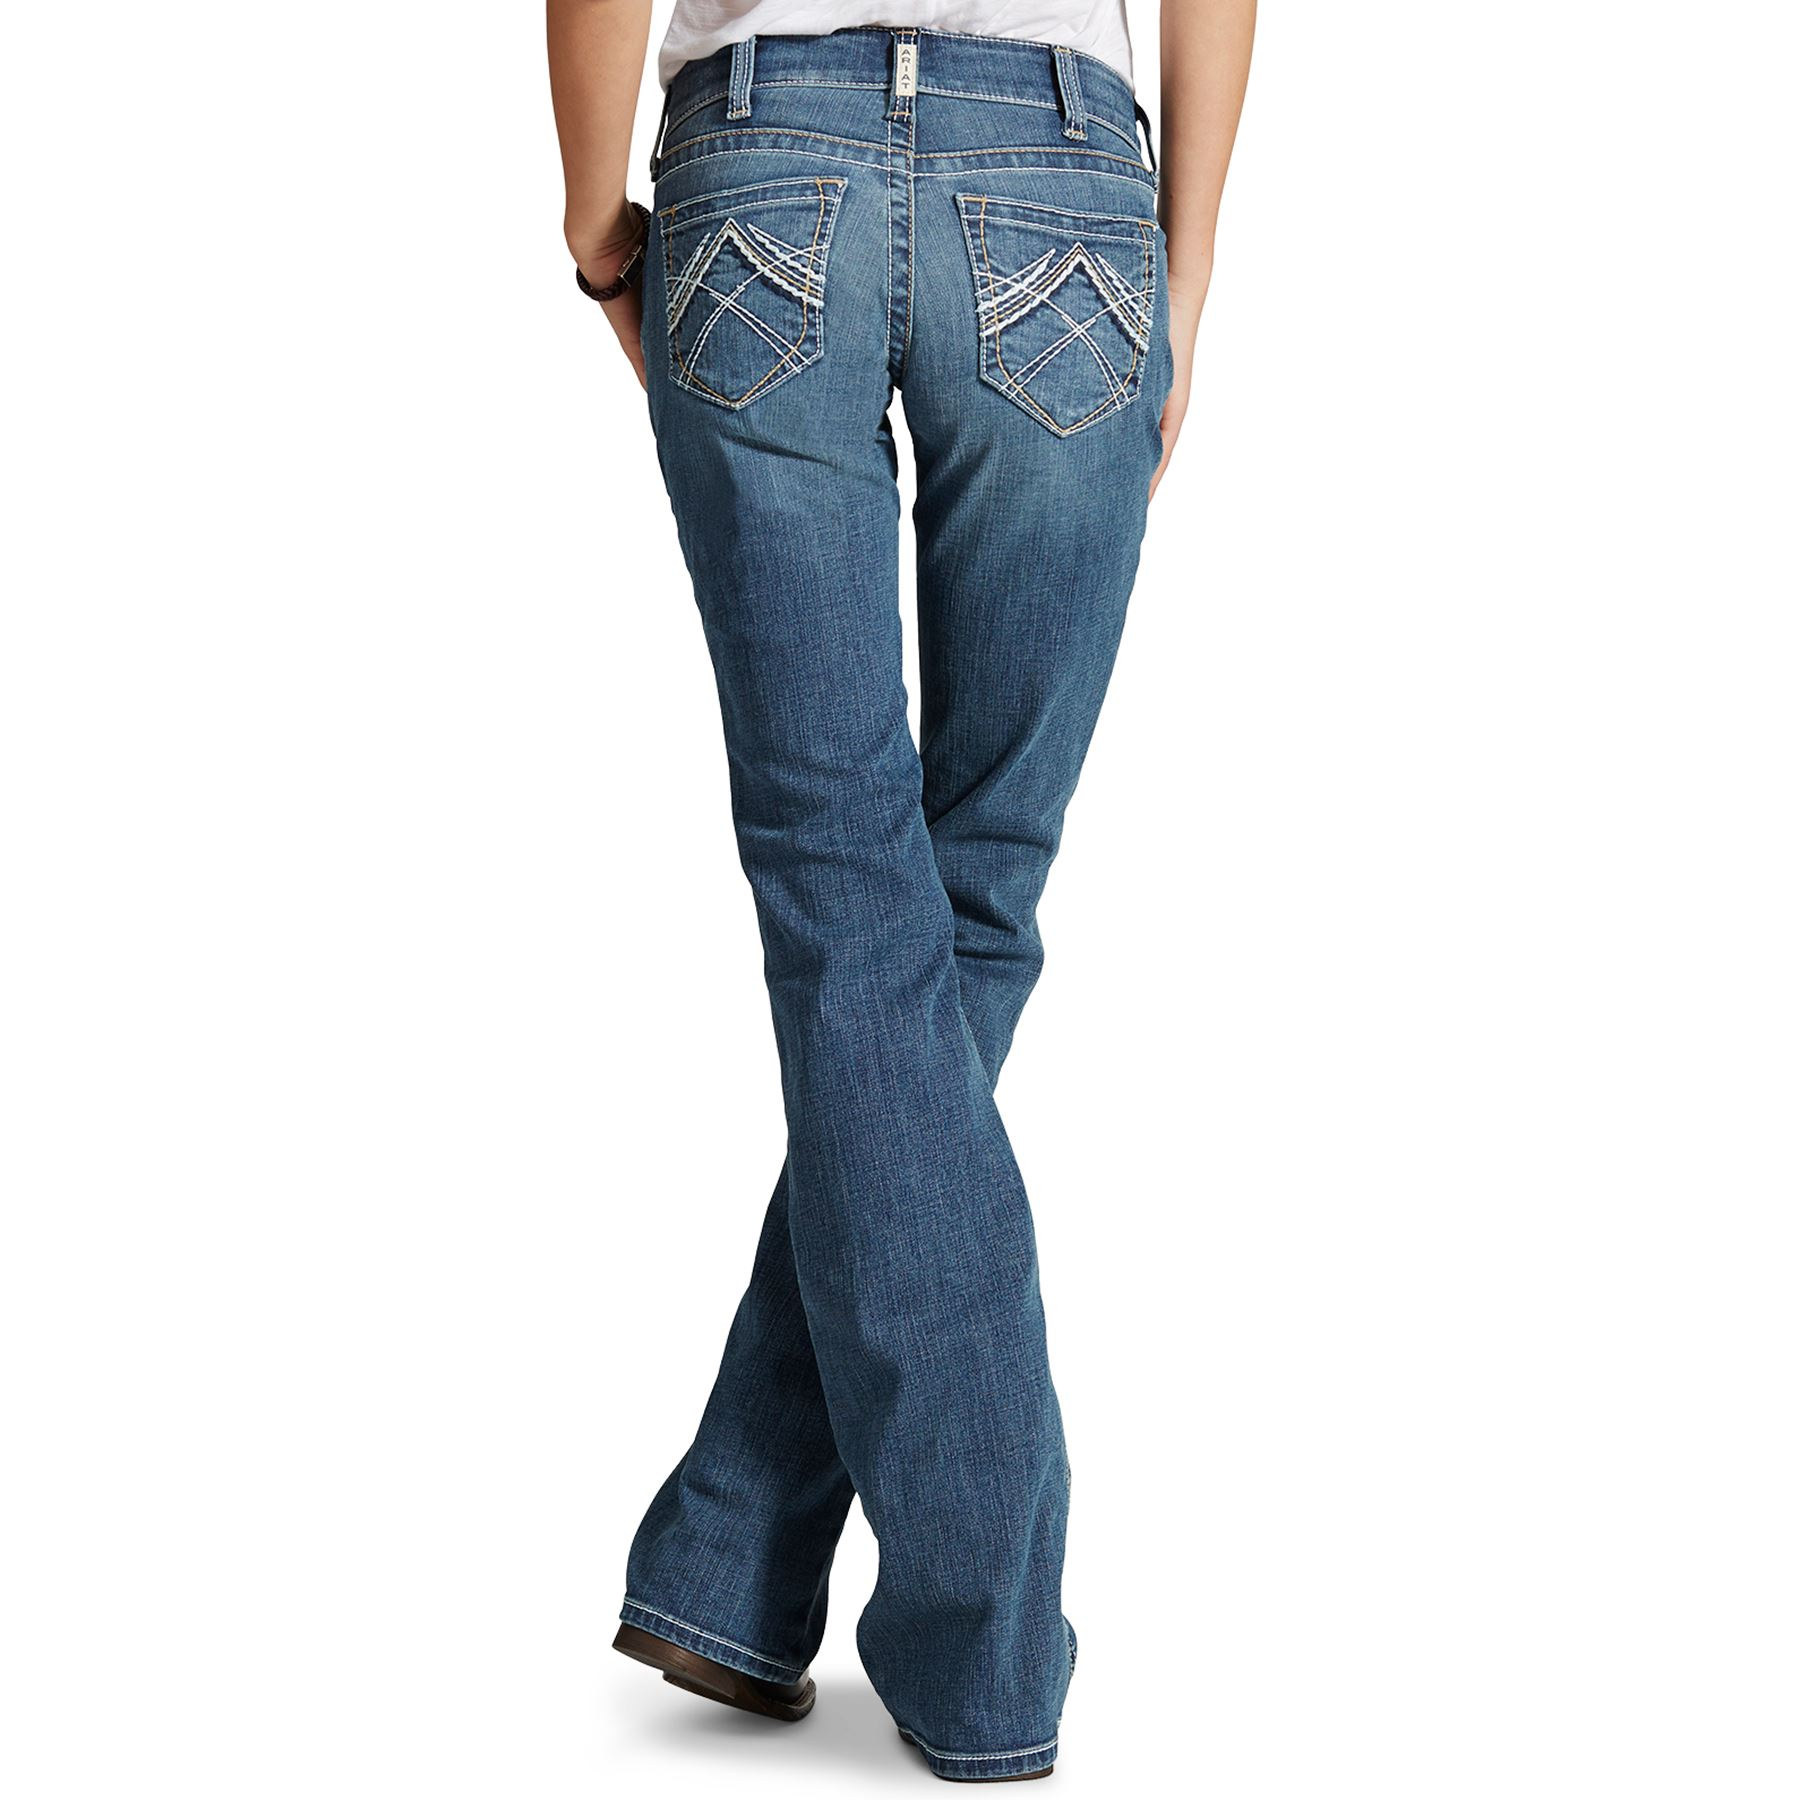 Ariat Ladies Whipstitch REAL Riding Jeans - Rainstorm